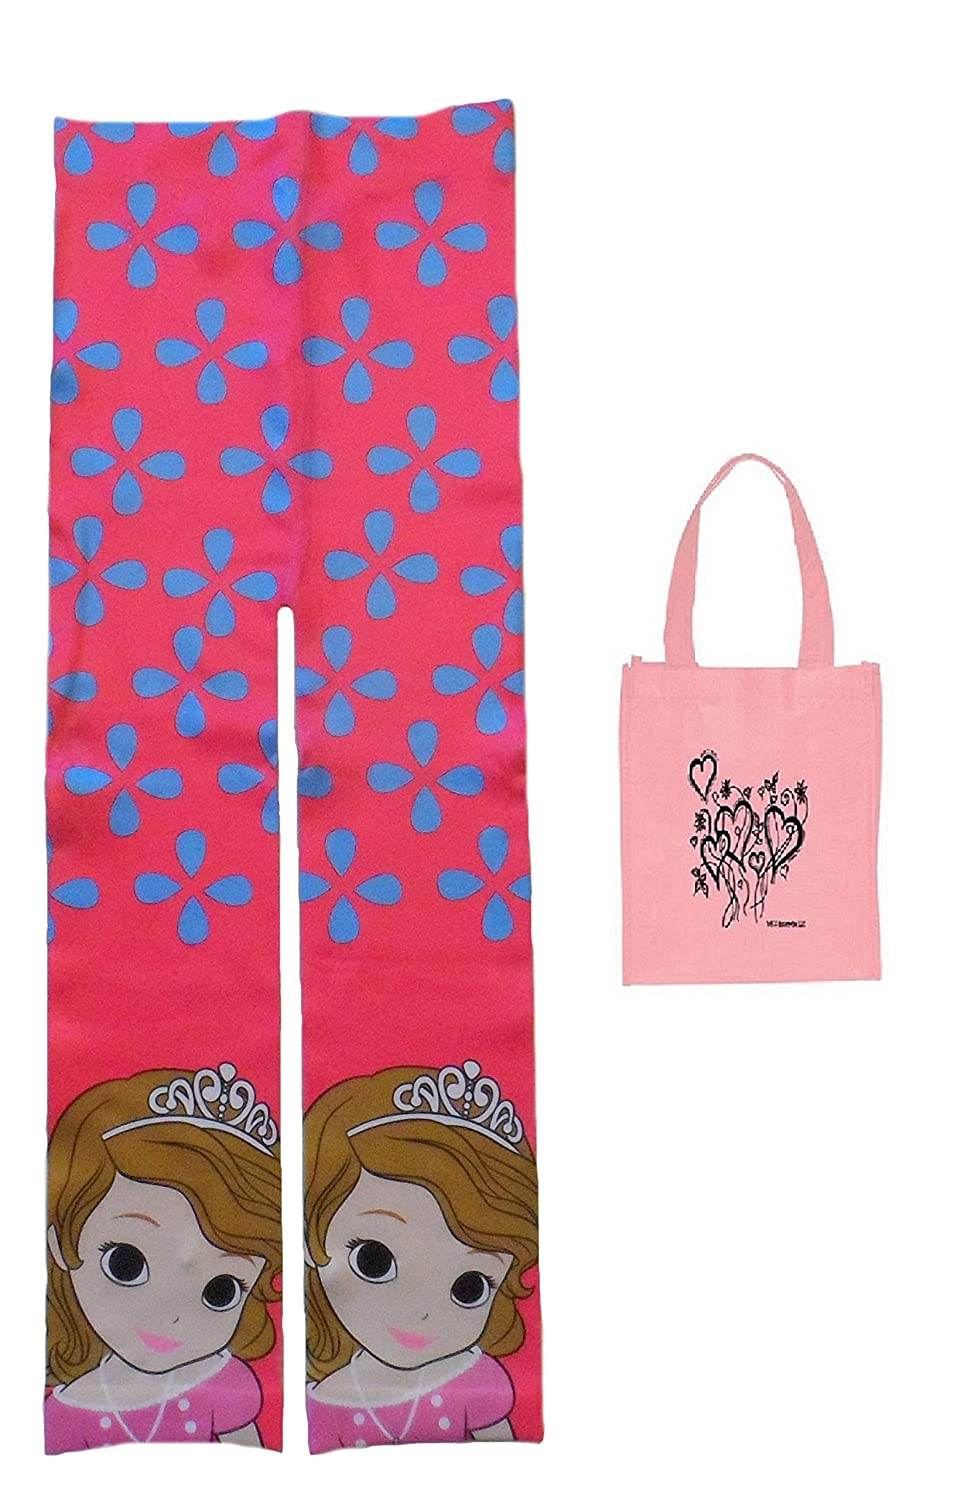 Disney Little Girls' Sofia the First Leggings & Tote - 2 Piece Gift Set